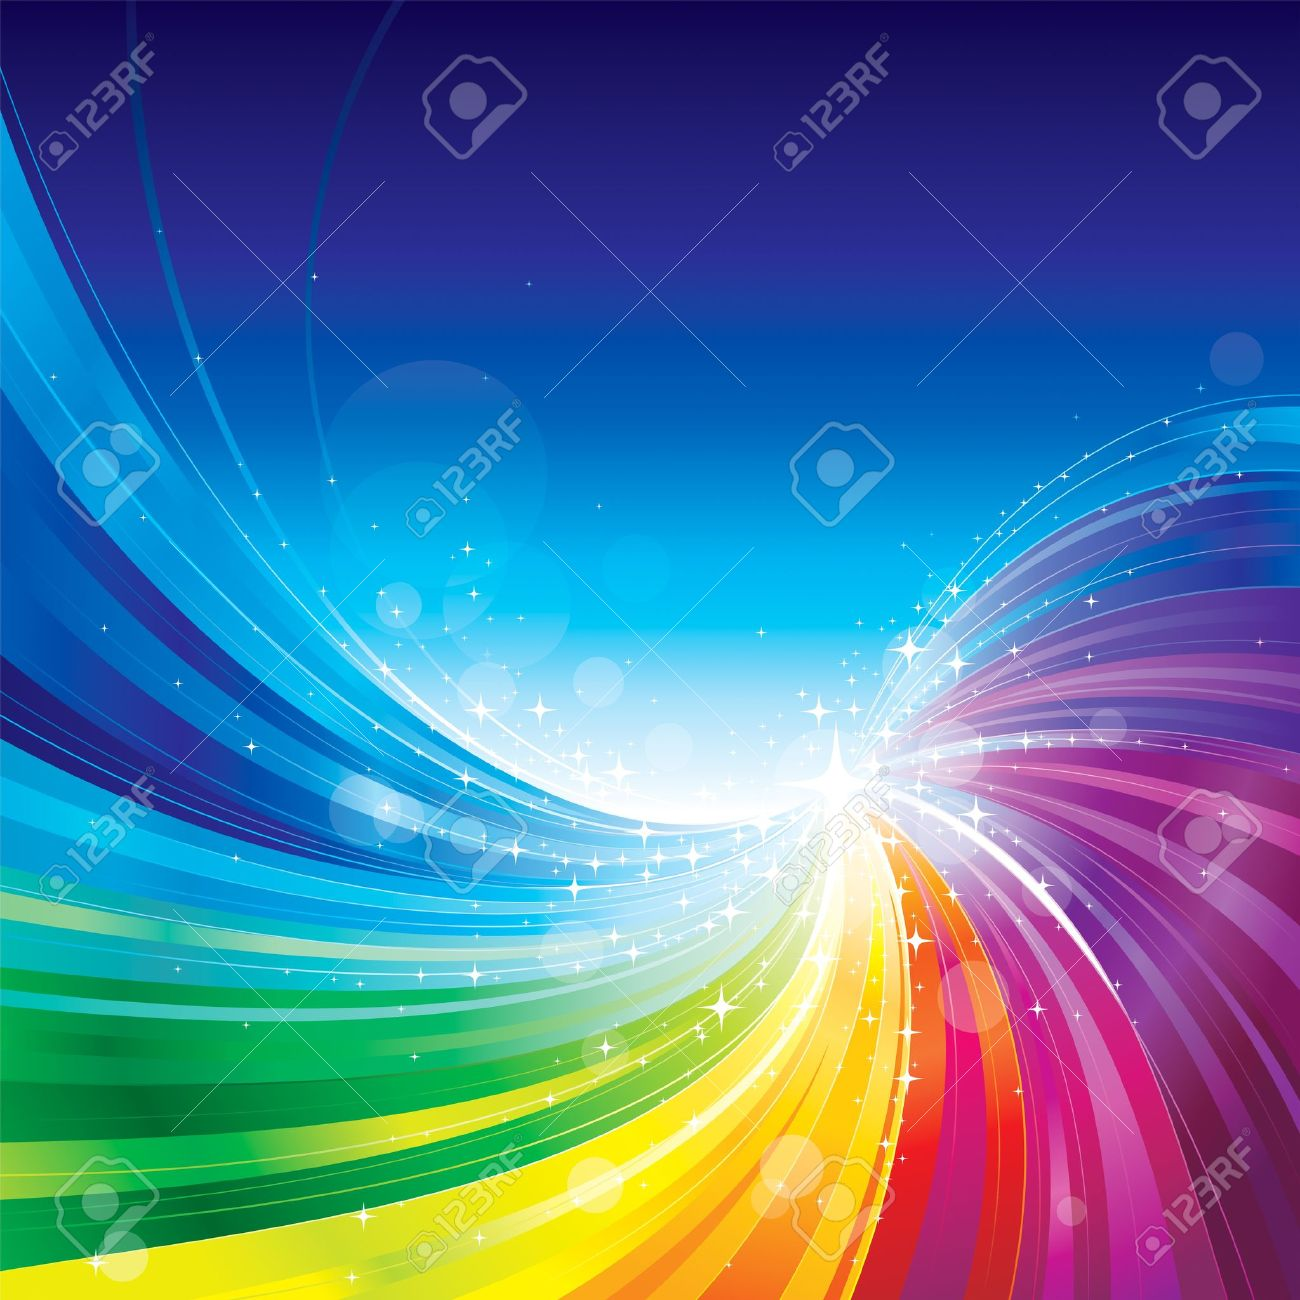 rainbow images u0026 stock pictures royalty free rainbow photos and